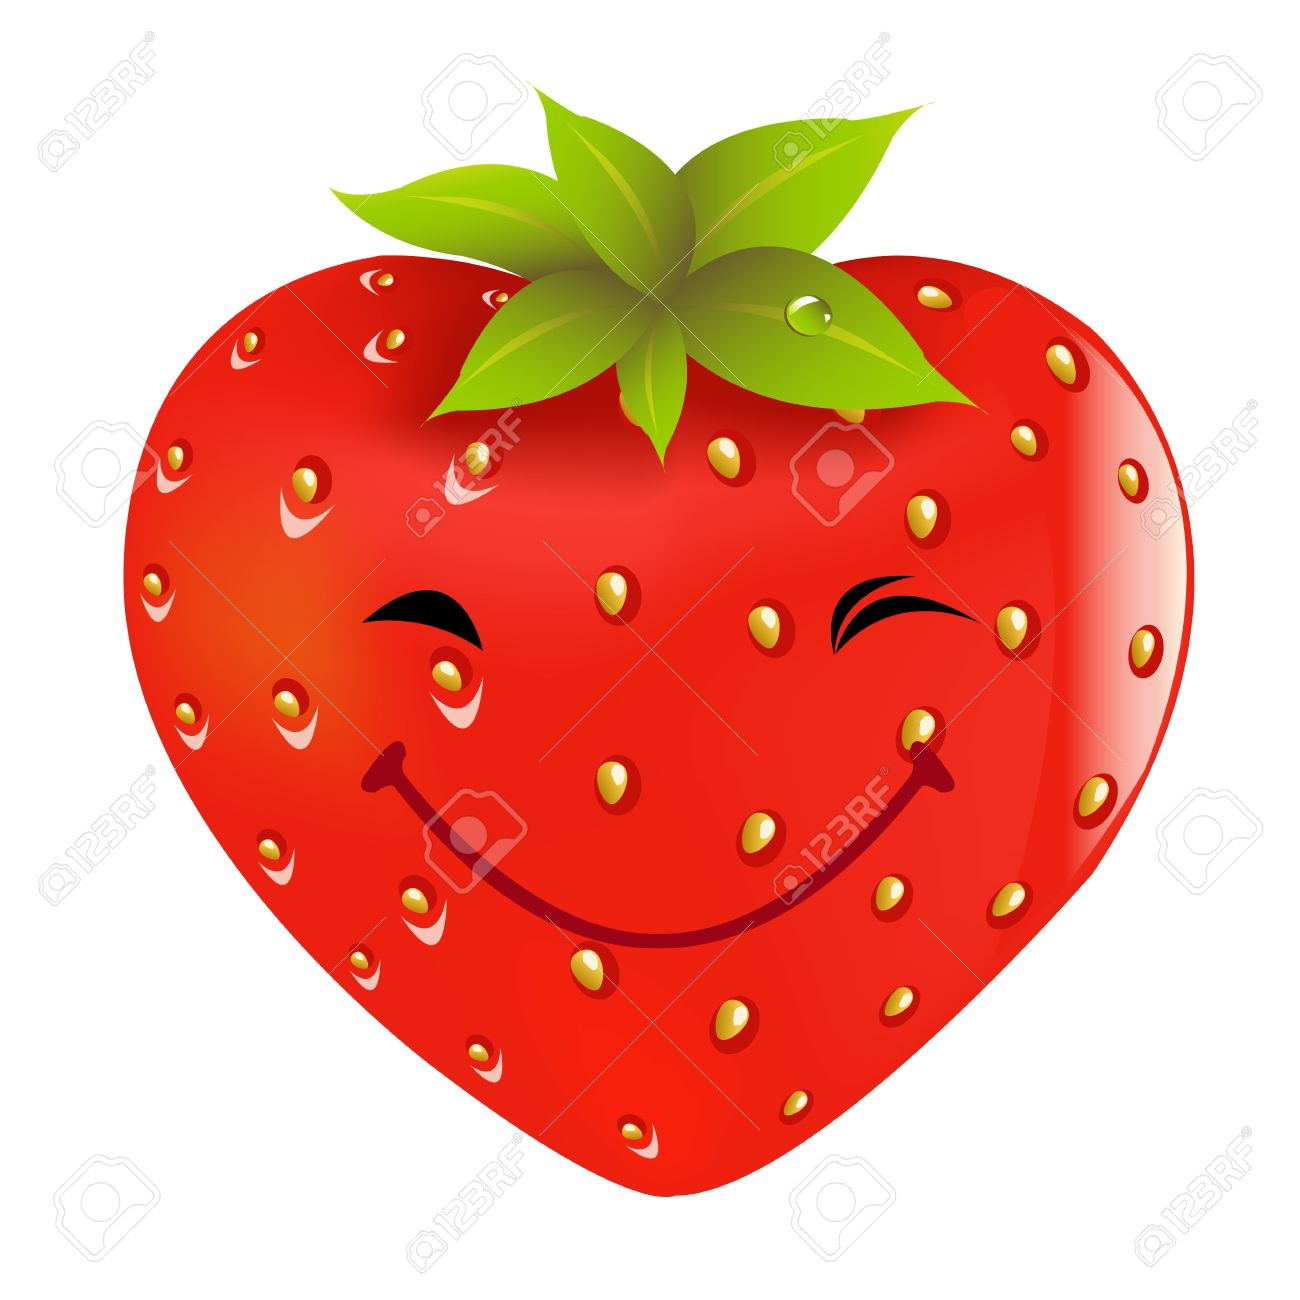 Cartoon Strawberry, Isolated On White Background, Vector Illustration Stock Vector - 9616101